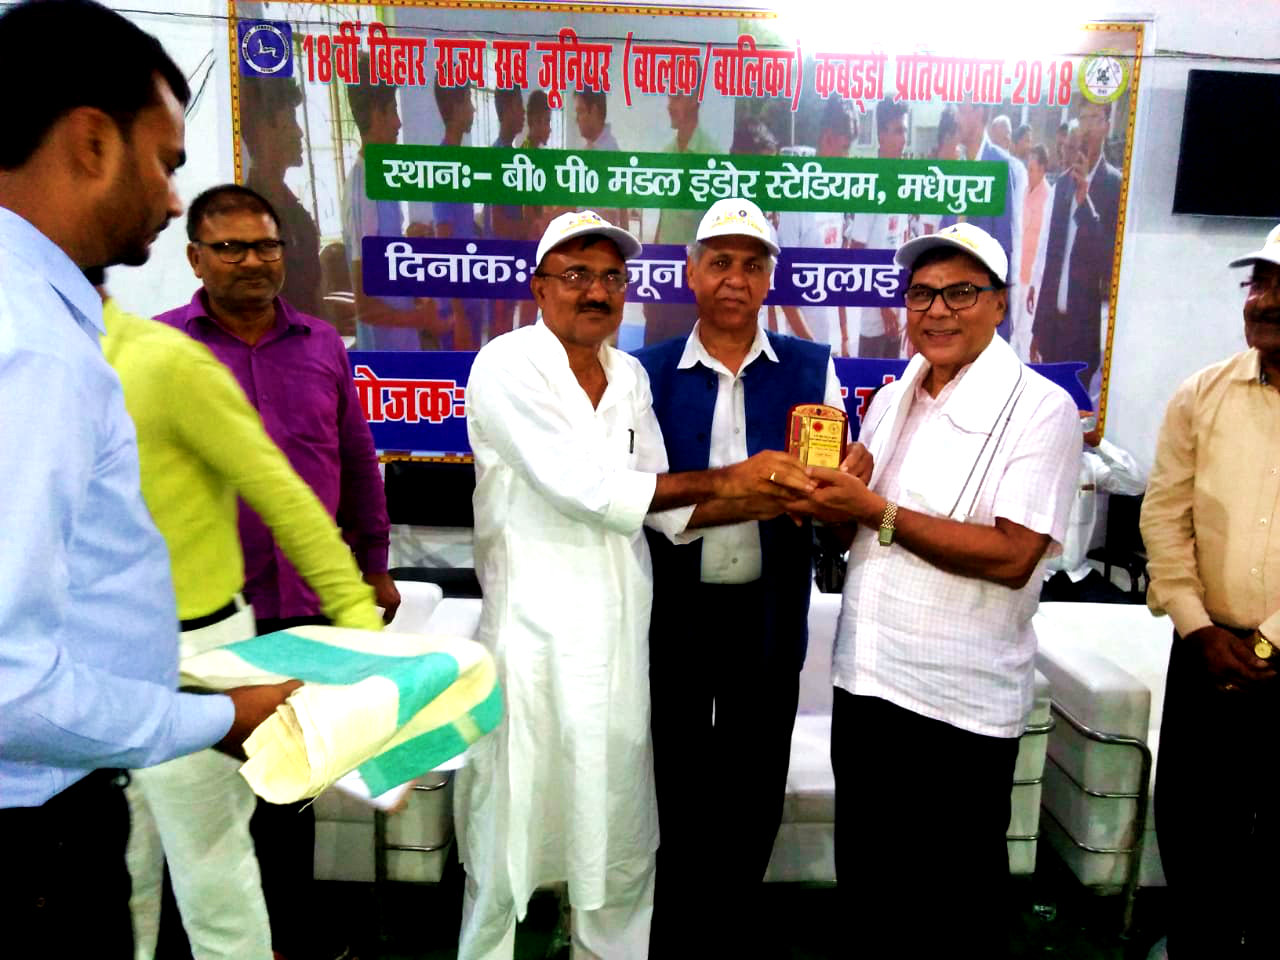 Bhishma Pitamah of Madhepura Dr.Bhupendra Madhepuri receiving honour from Vice-Chancellor of BNMU Dr.Awadh Kishor Ray along with President of District Mukhiya Sangh & District Kabaddi Sangh Shri Jaikant Yadav at B.P.Mandal Indoor Stadium Madhepura.